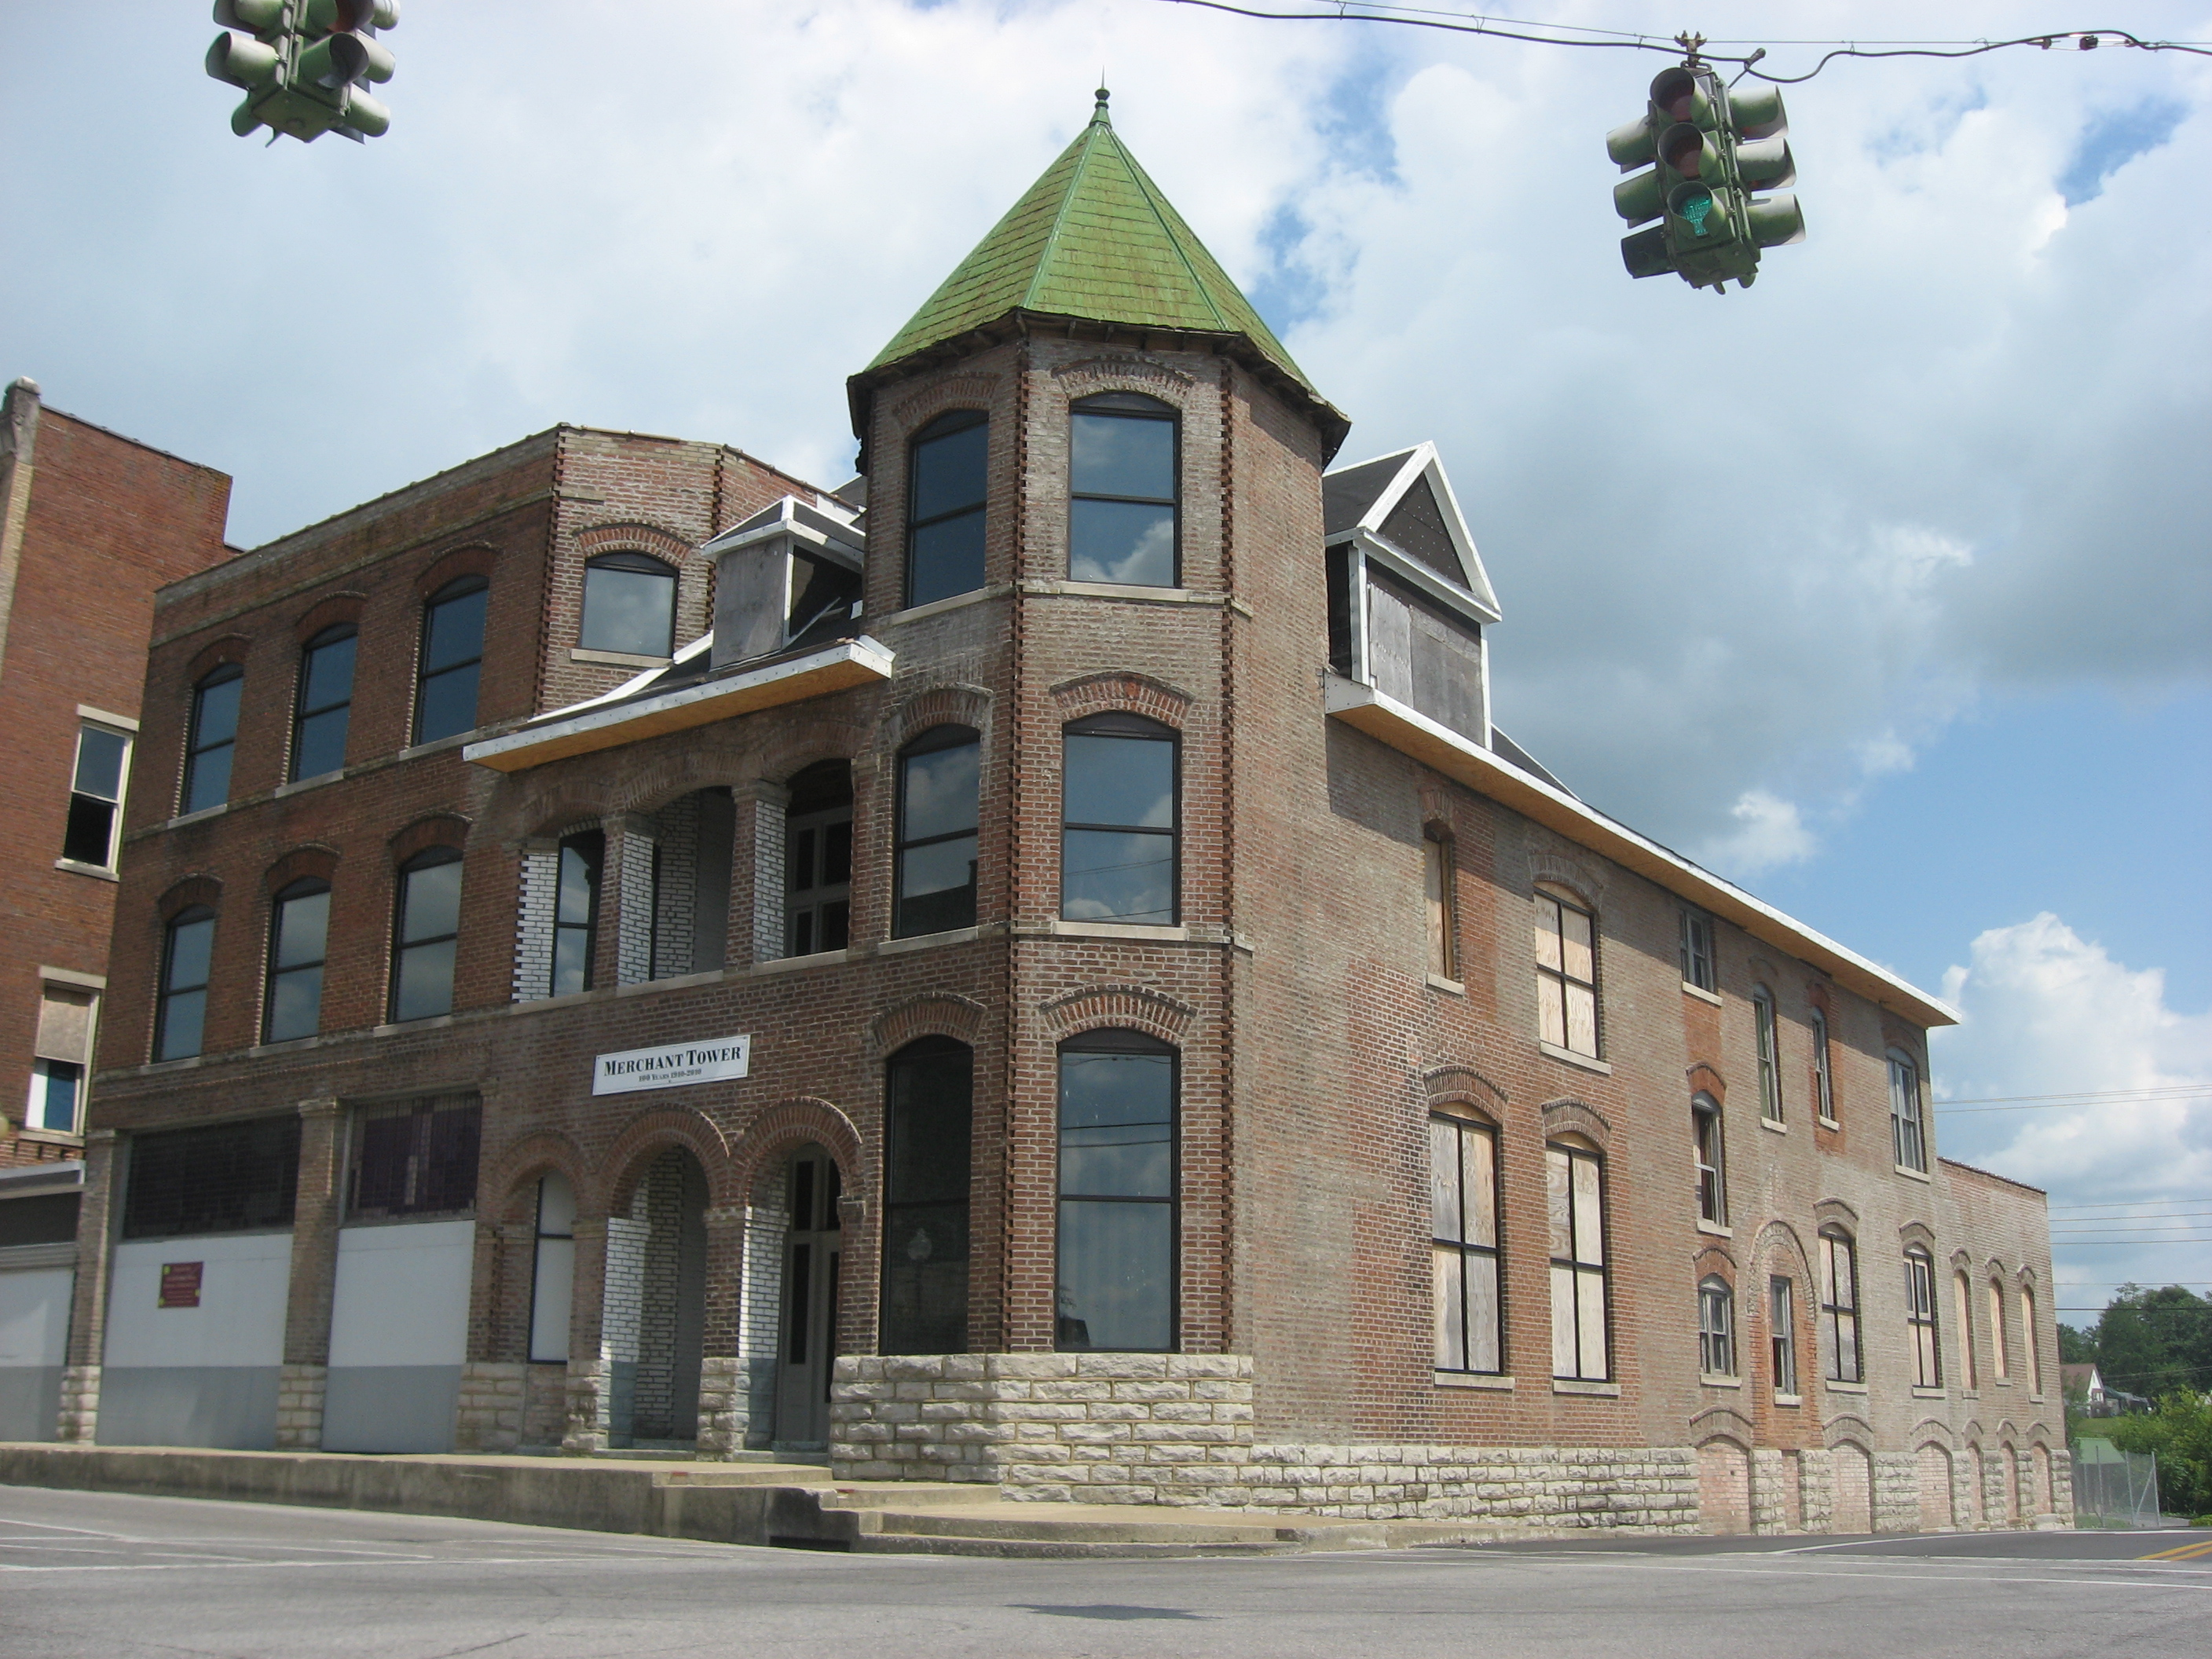 Constructed in 1910, this historic hotel is now being renovated